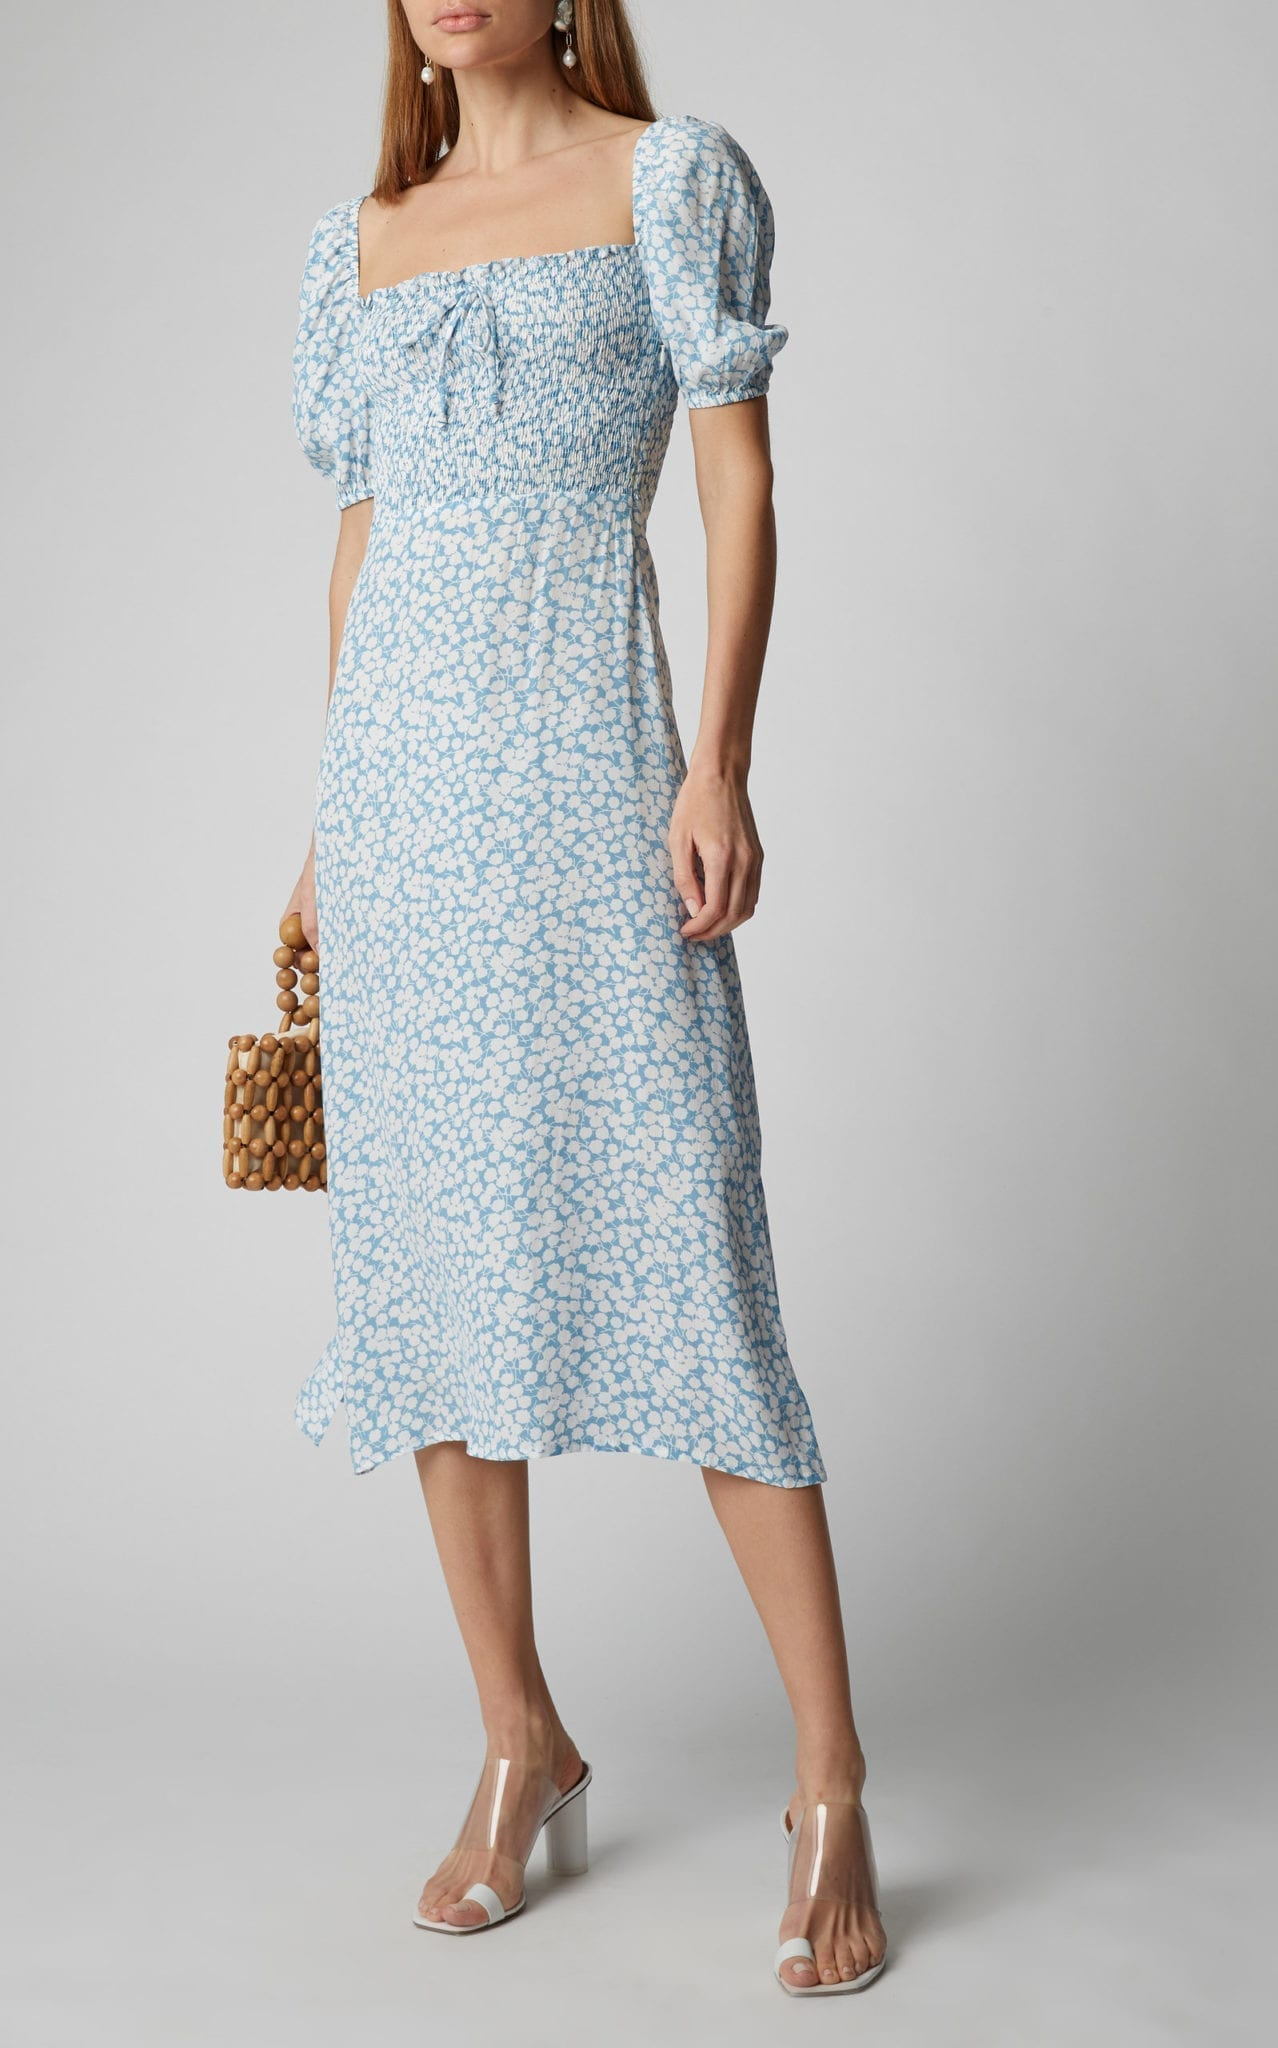 FAITHFULL THE BRAND Majorelle Floral-Print Crepe Midi Dress